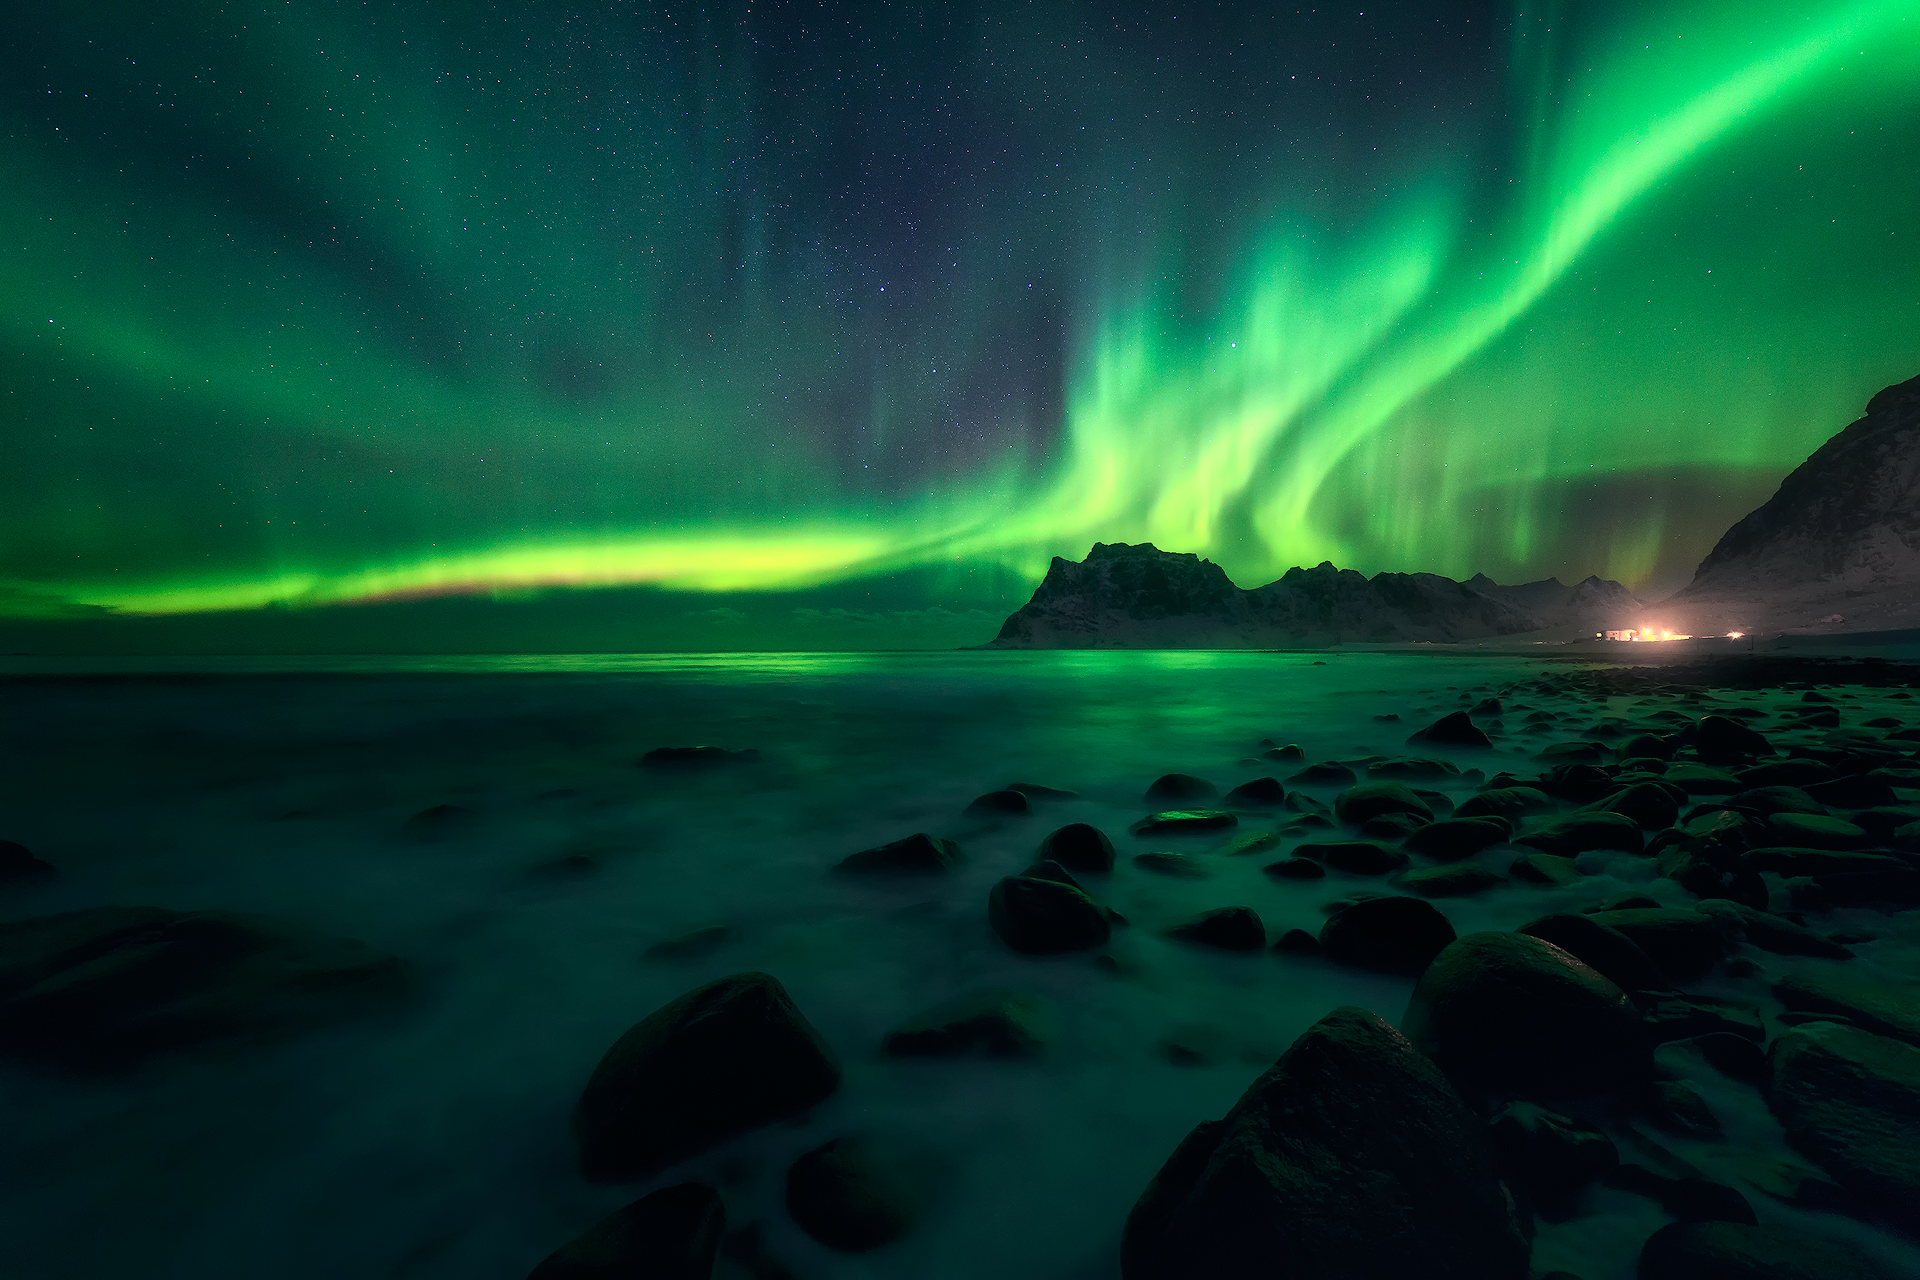 Northern lights -